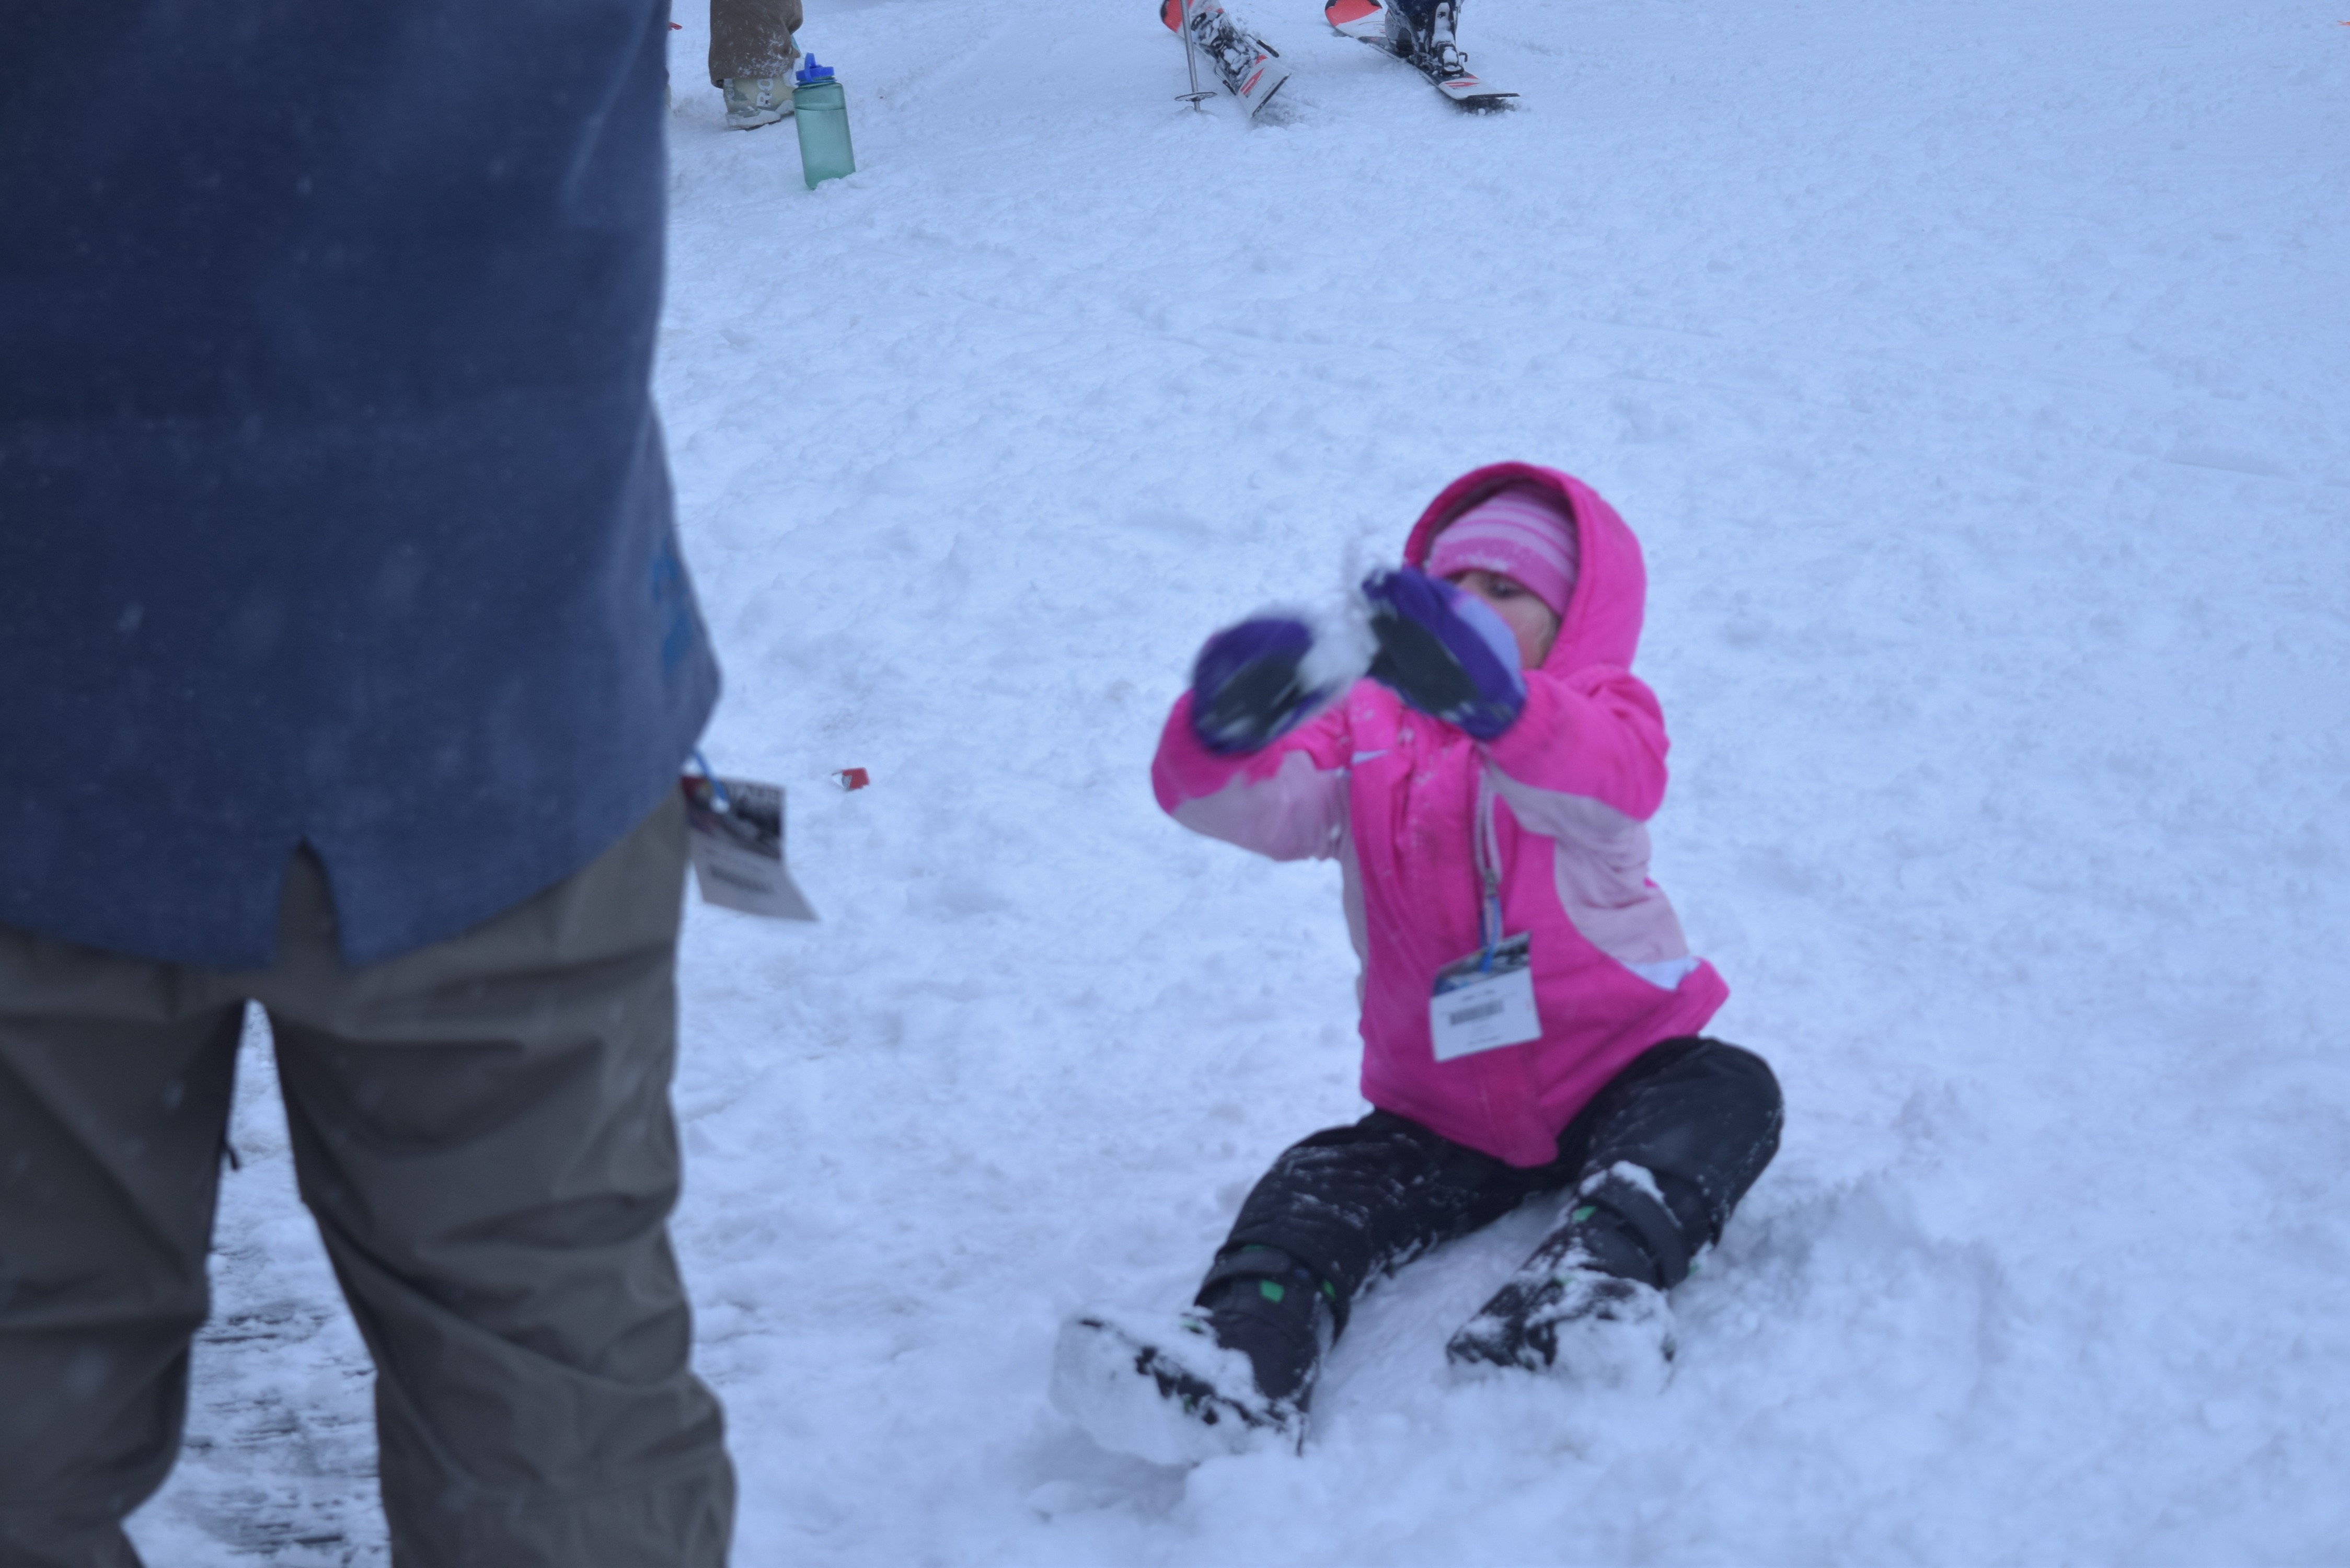 Child skier in pink coat and hat plays in the snow, other skiers standing around